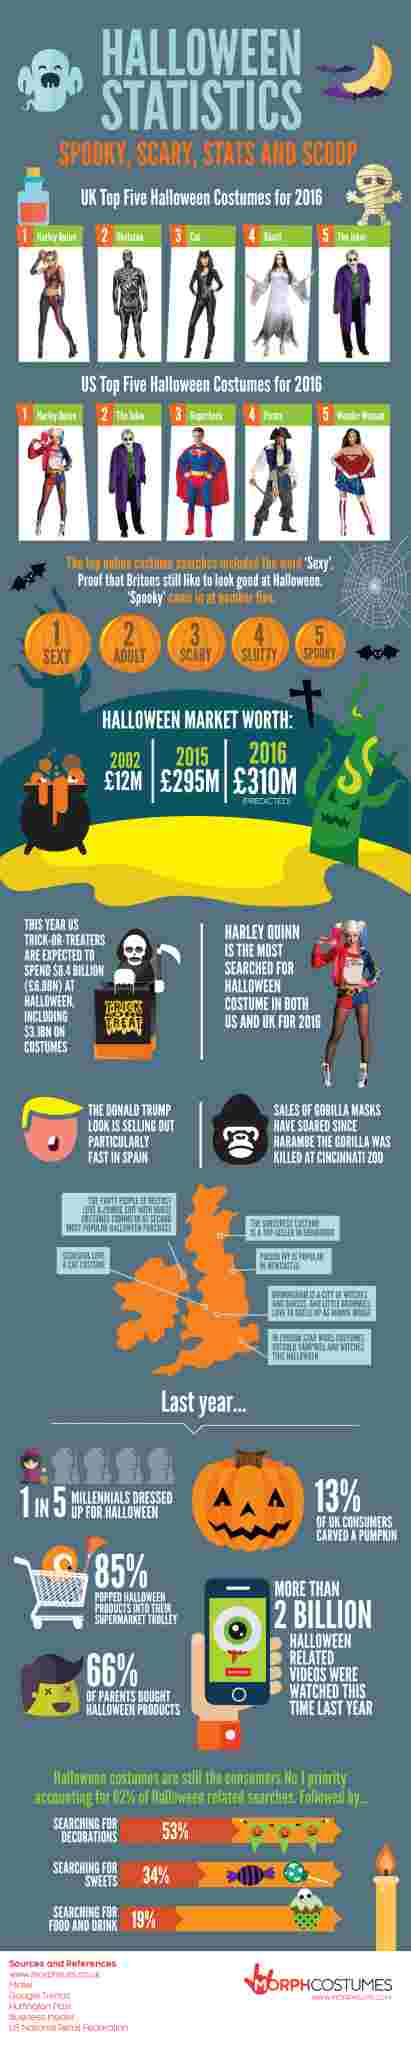 halloween-stats-2016-info-graphic